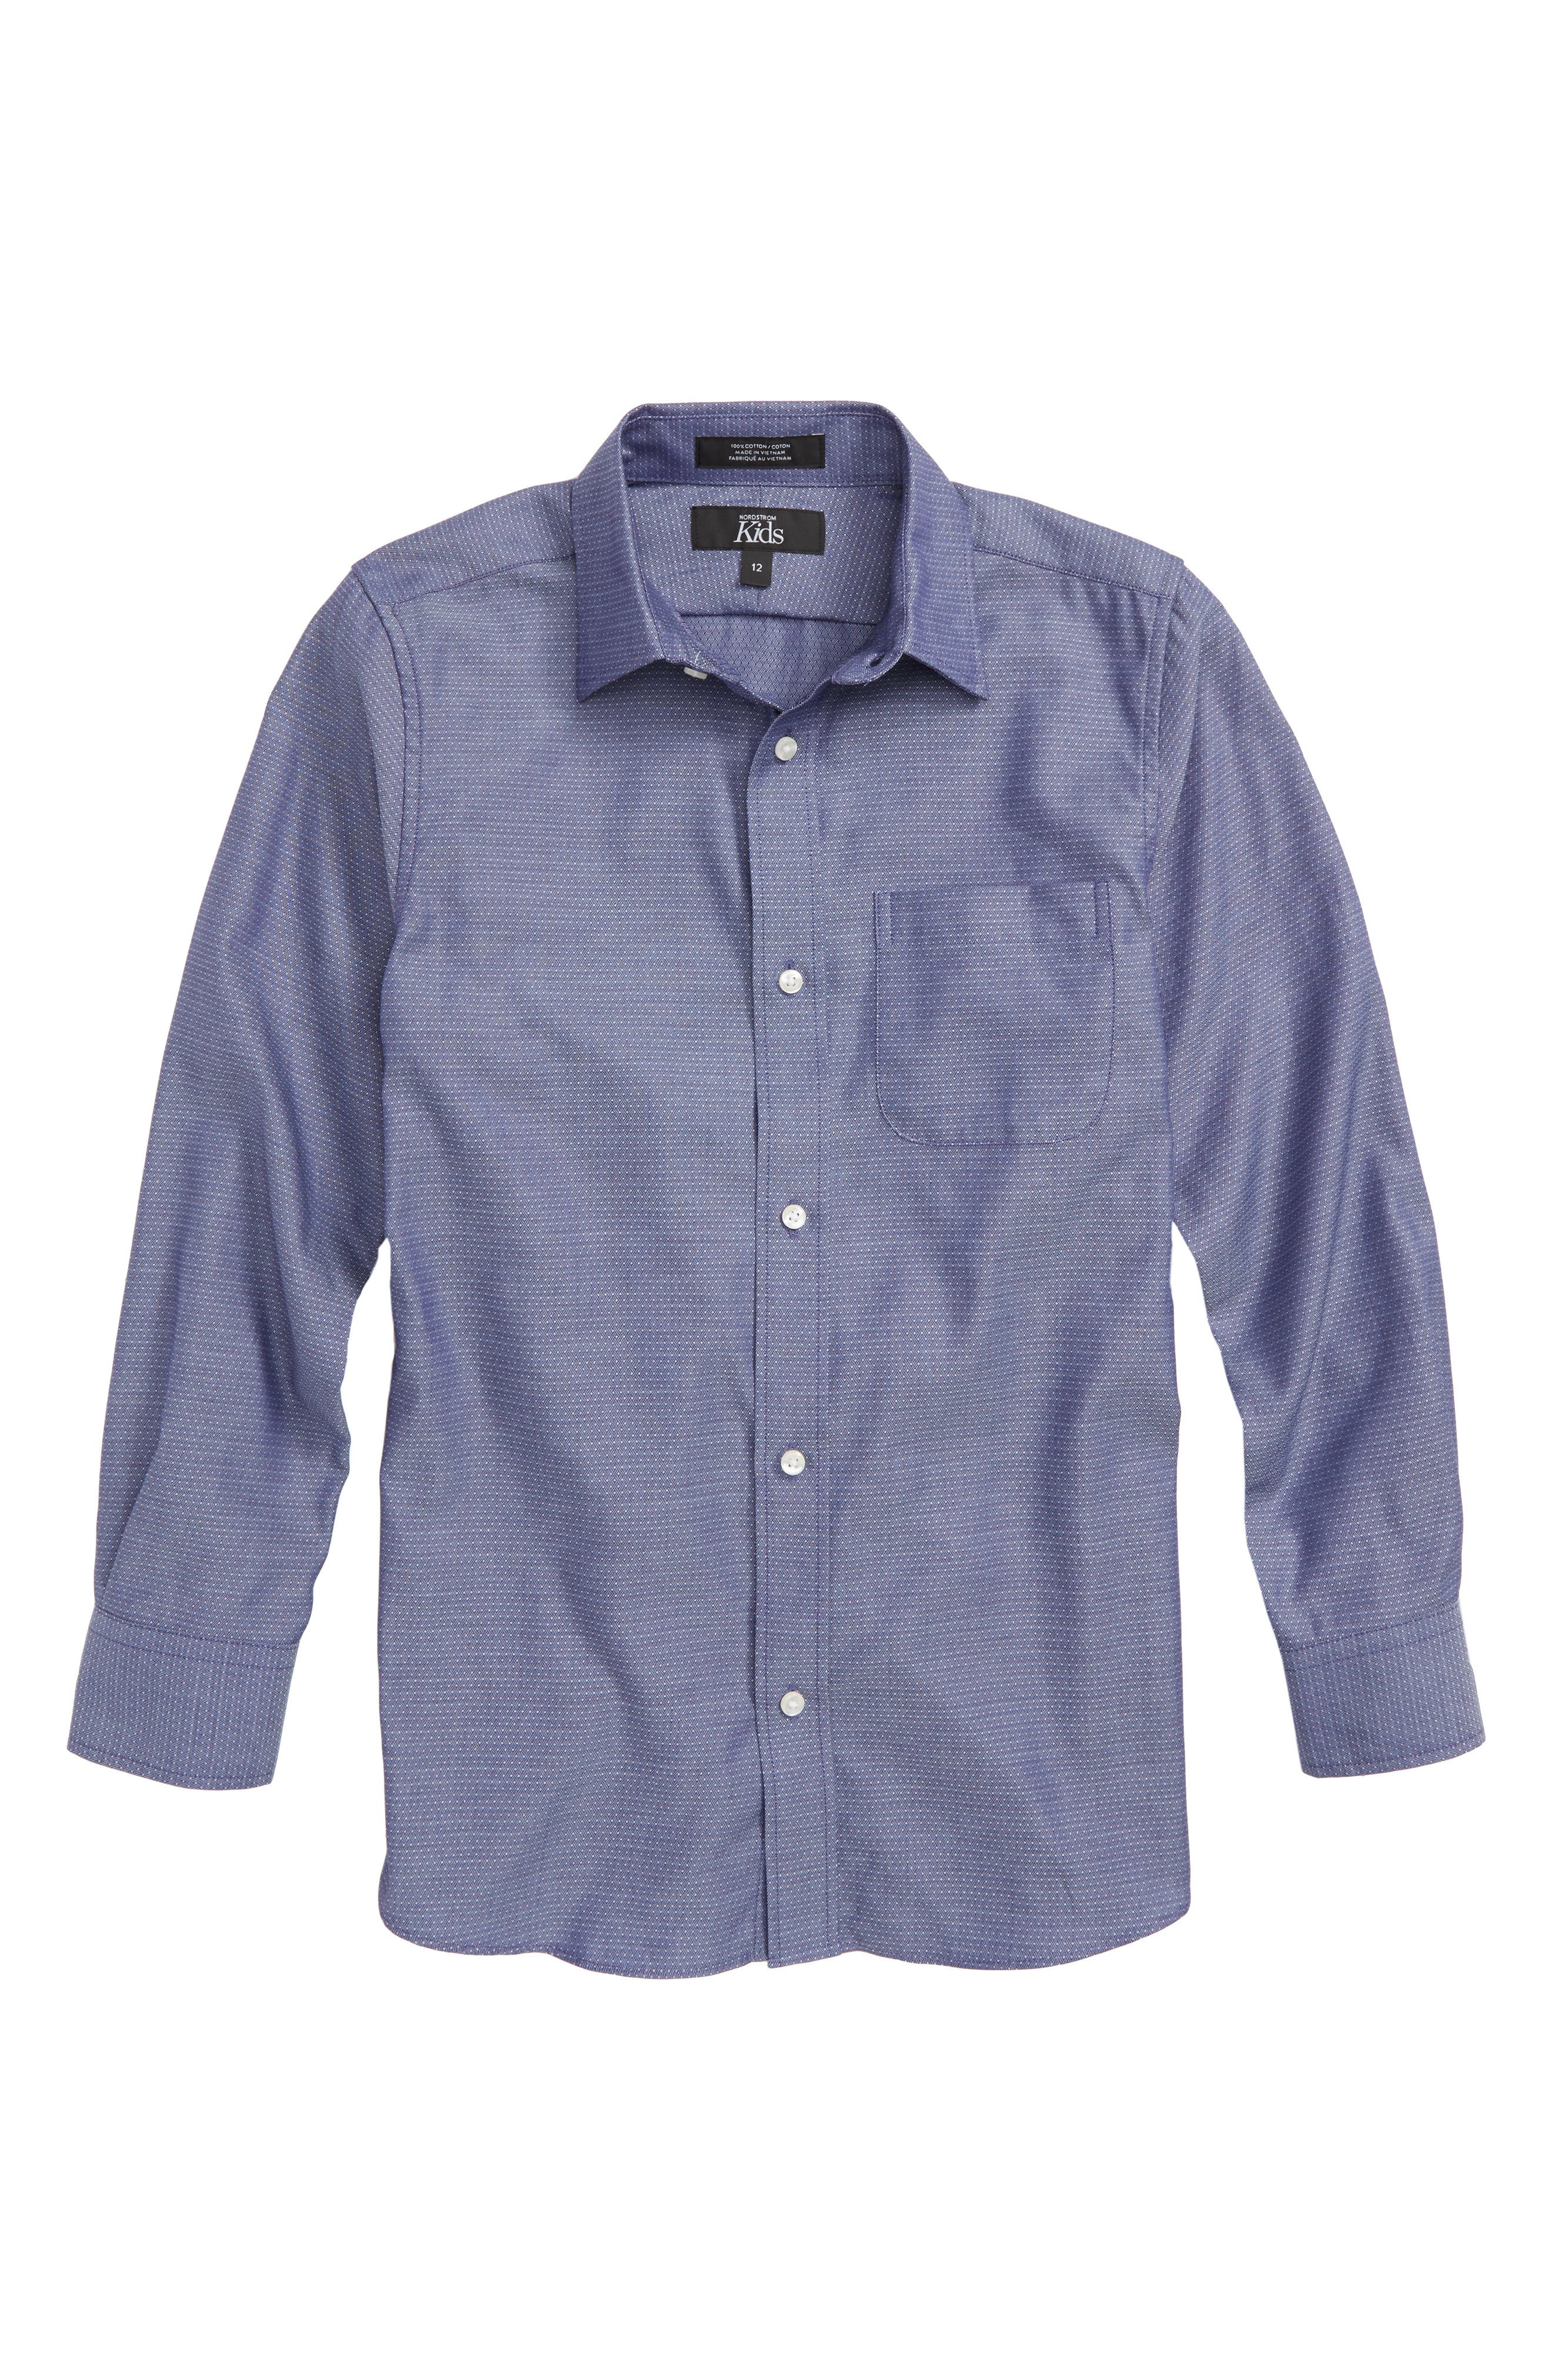 Skipper Dress Shirt,                         Main,                         color, NAVY SKIPPER